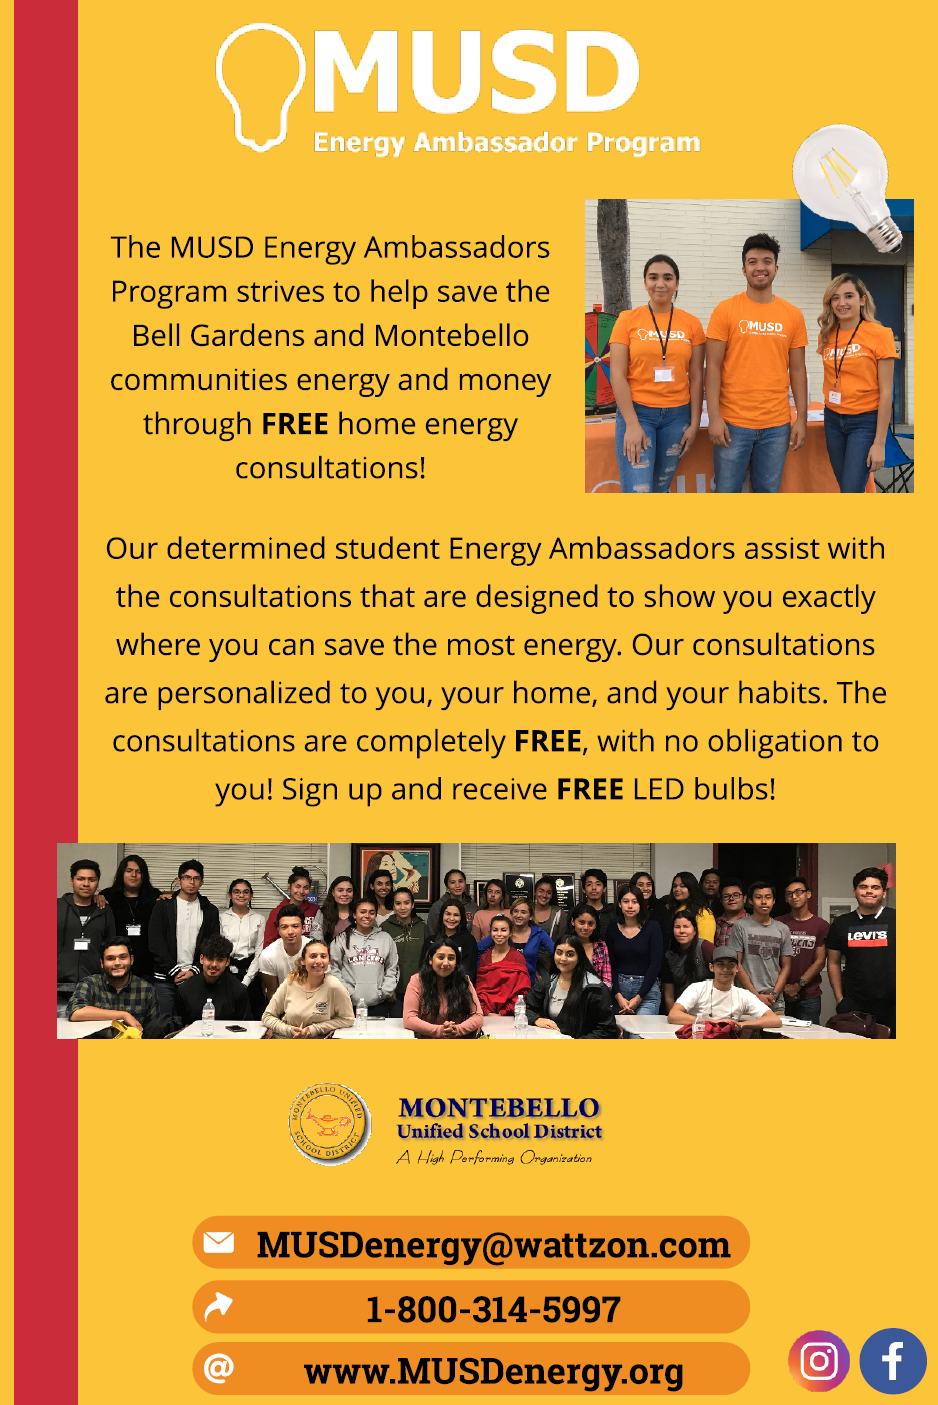 Energy Ambassador Program